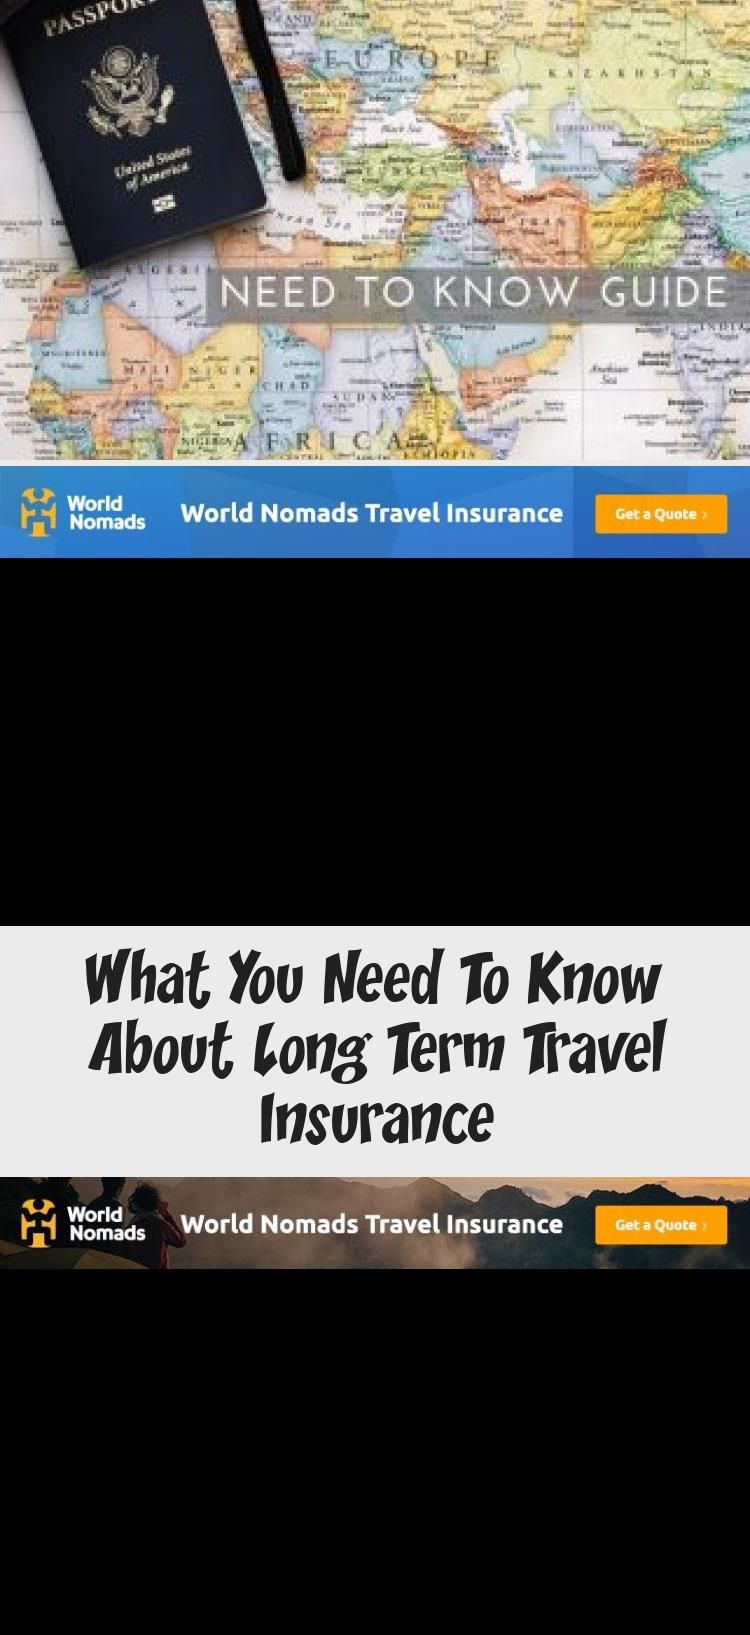 Everything You Need To Know About Travel Insurance For Long Term Travel Whether Your Trip Is A Month Or Endless